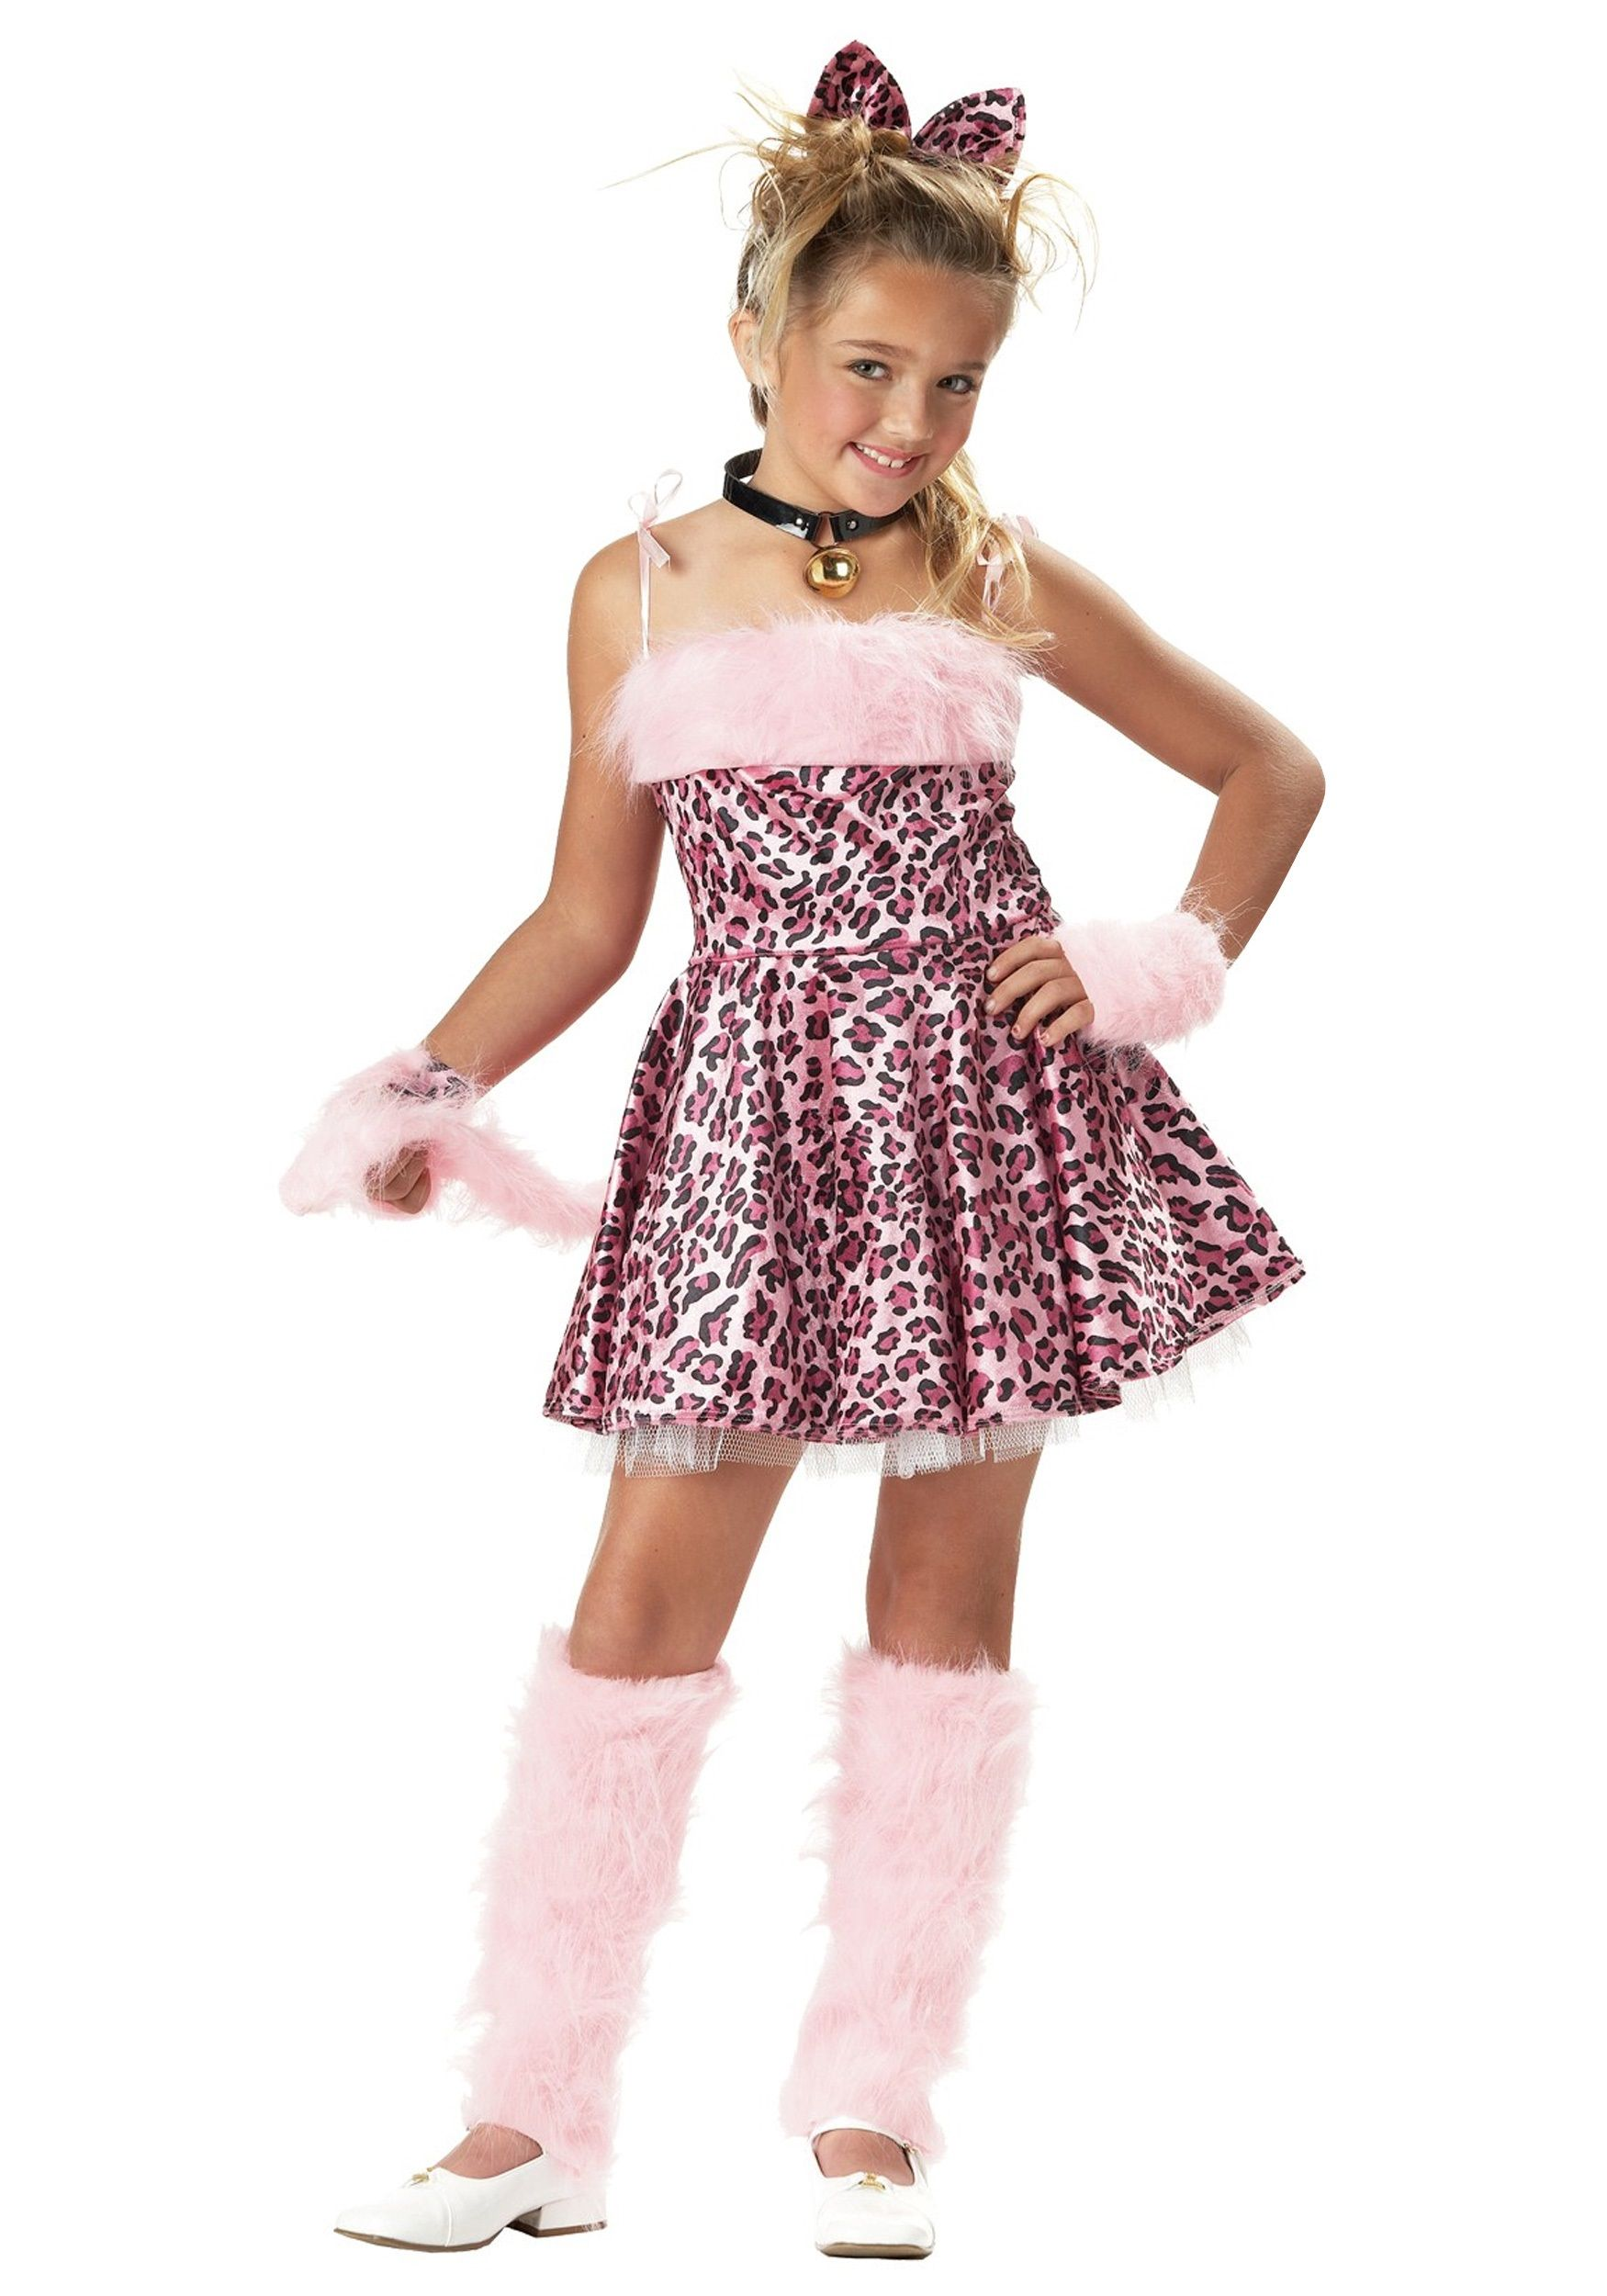 sassy cat costume | lily | Pinterest | Cheetah costume, Animal ...